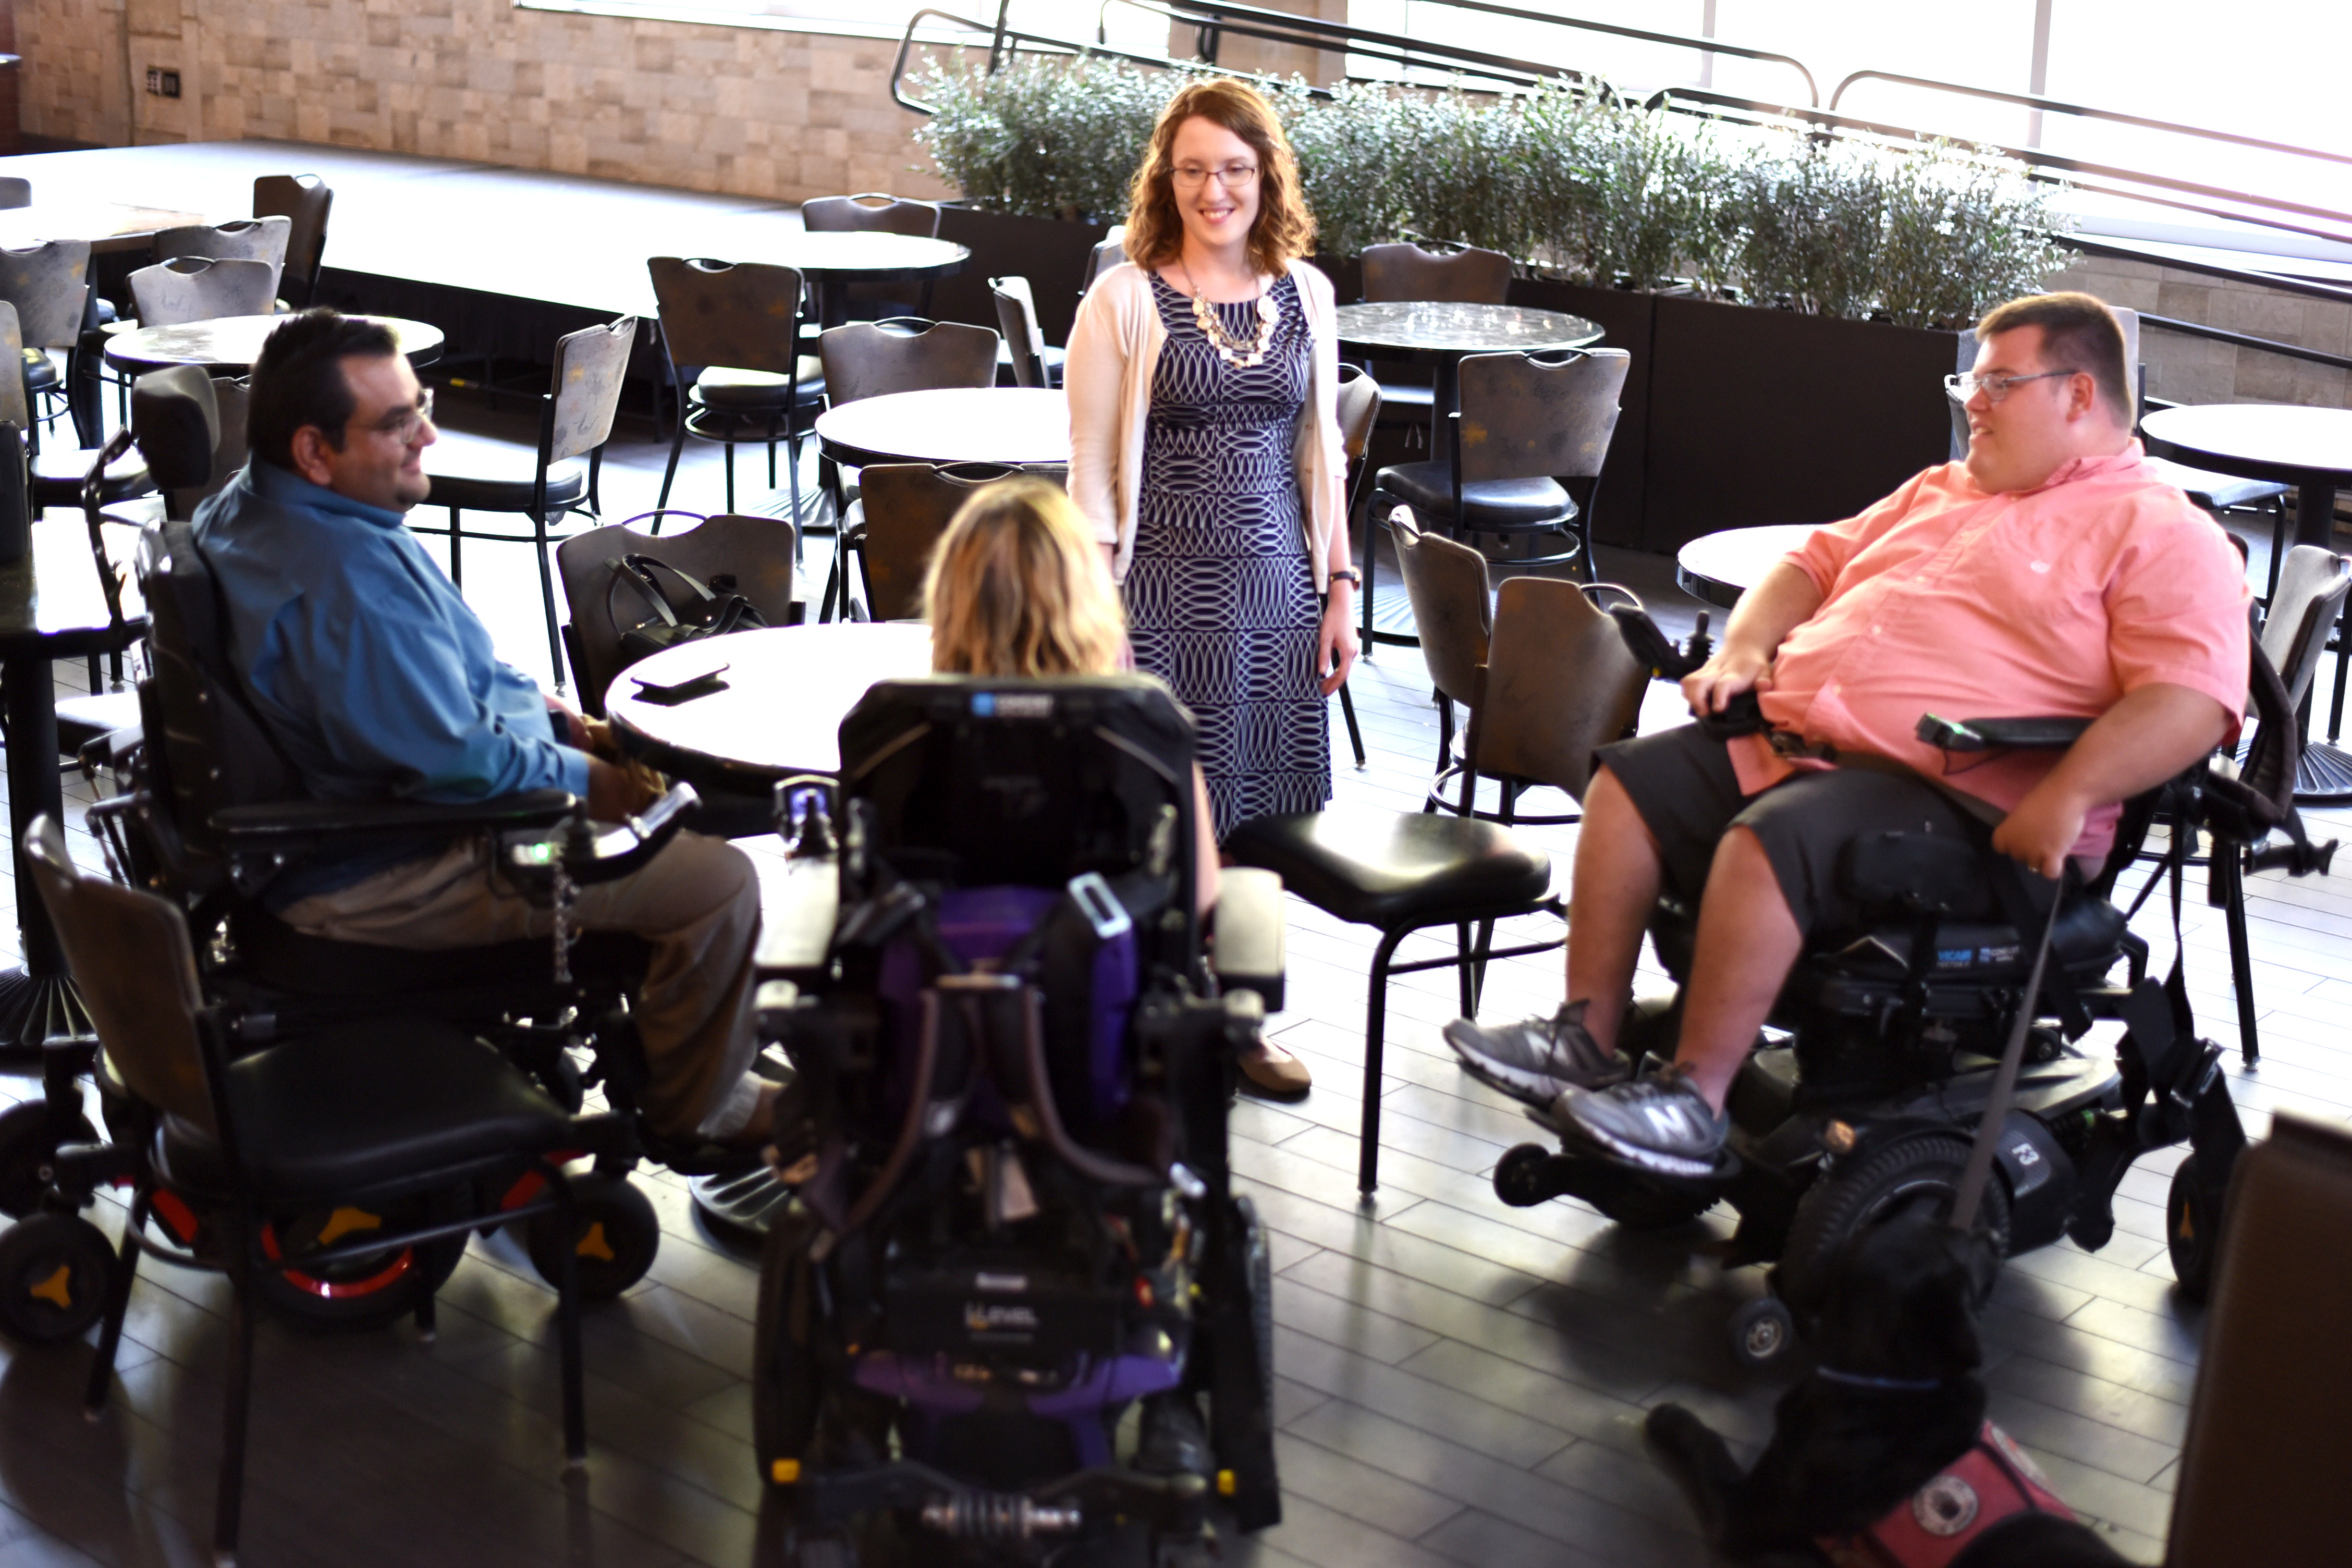 Members of the Accessibility and ADA staff interact with people who use wheelchairs in the Shack of the MU Student Center.